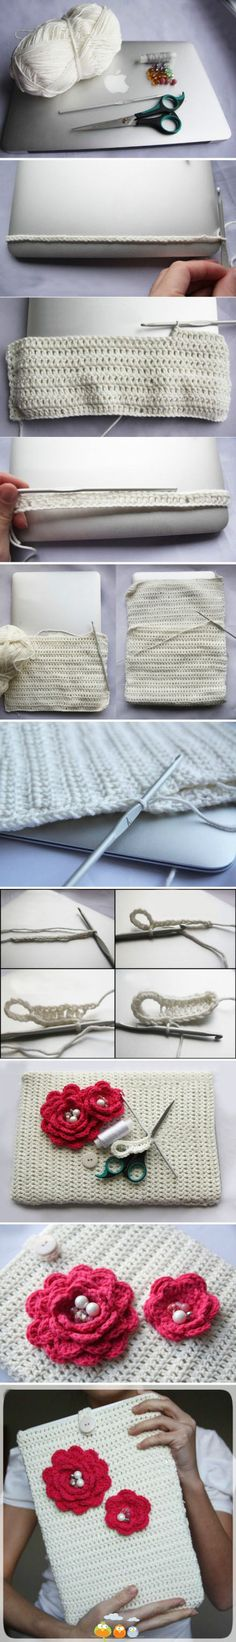 Crochet Cover Ipad - Photo Tutorial * ✿⊱╮Teresa Restegui http://www.pinterest.com/teretegui/✿⊱╮